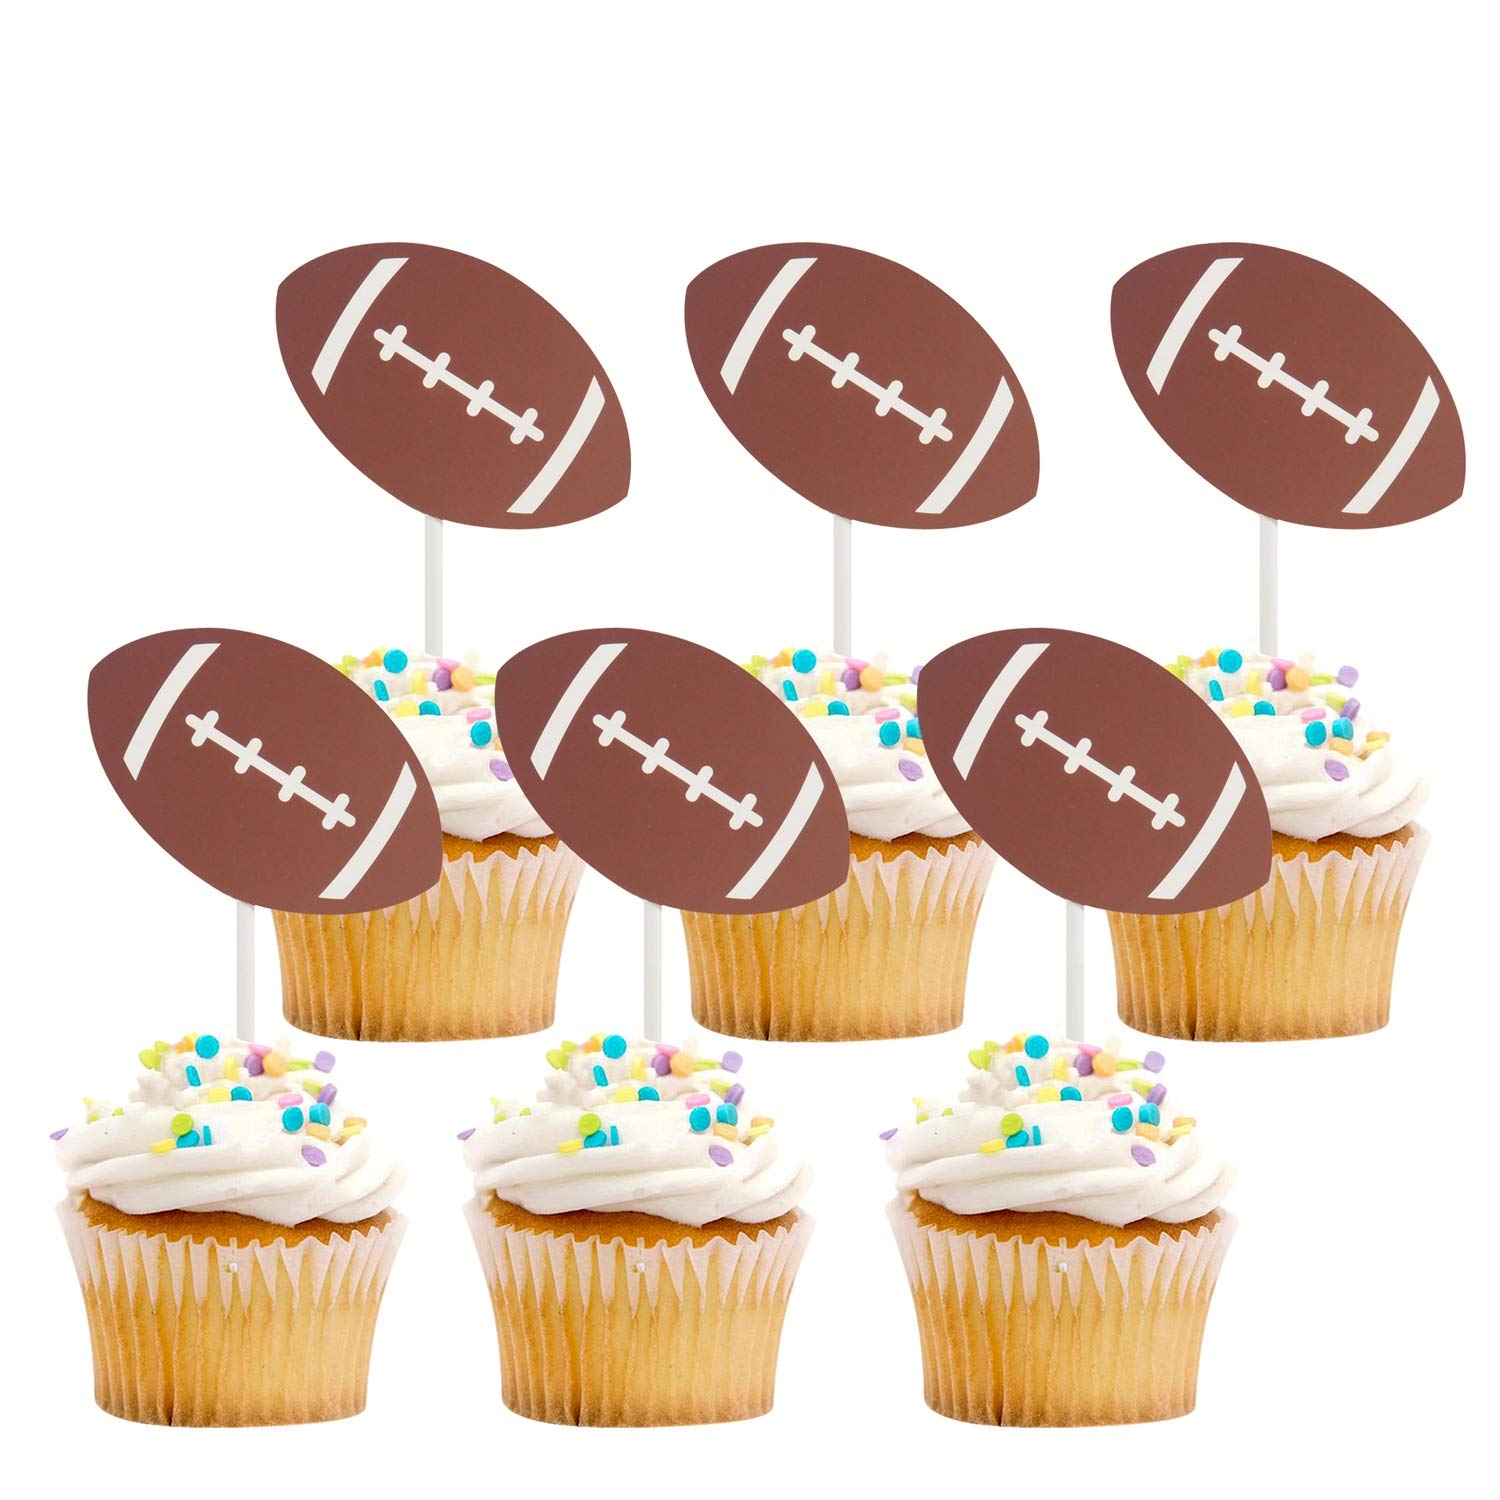 iMagitek 30 Pack US Football Cupcake Toppers Picks Cake Decorations for Kids Birthday, Football Theme Party by iMagitek